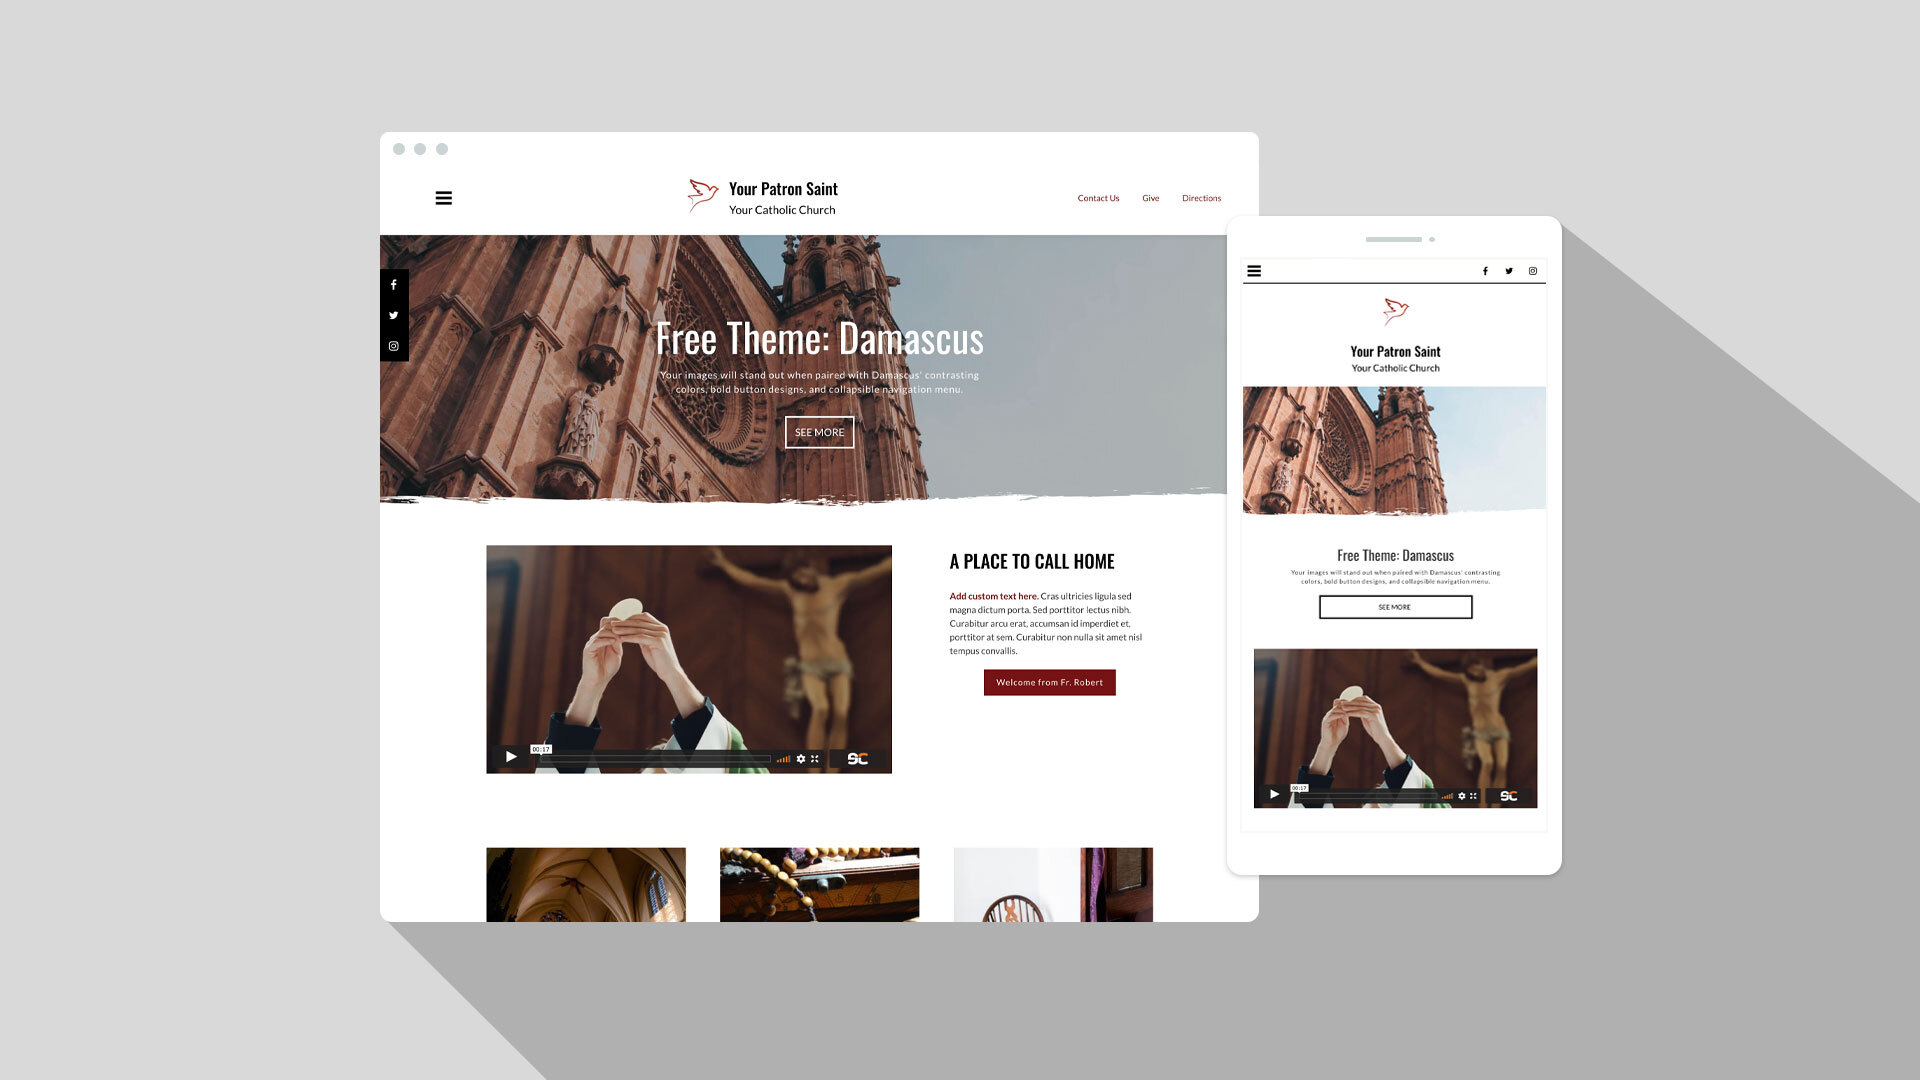 Damascus free theme offers new navigation and site name options